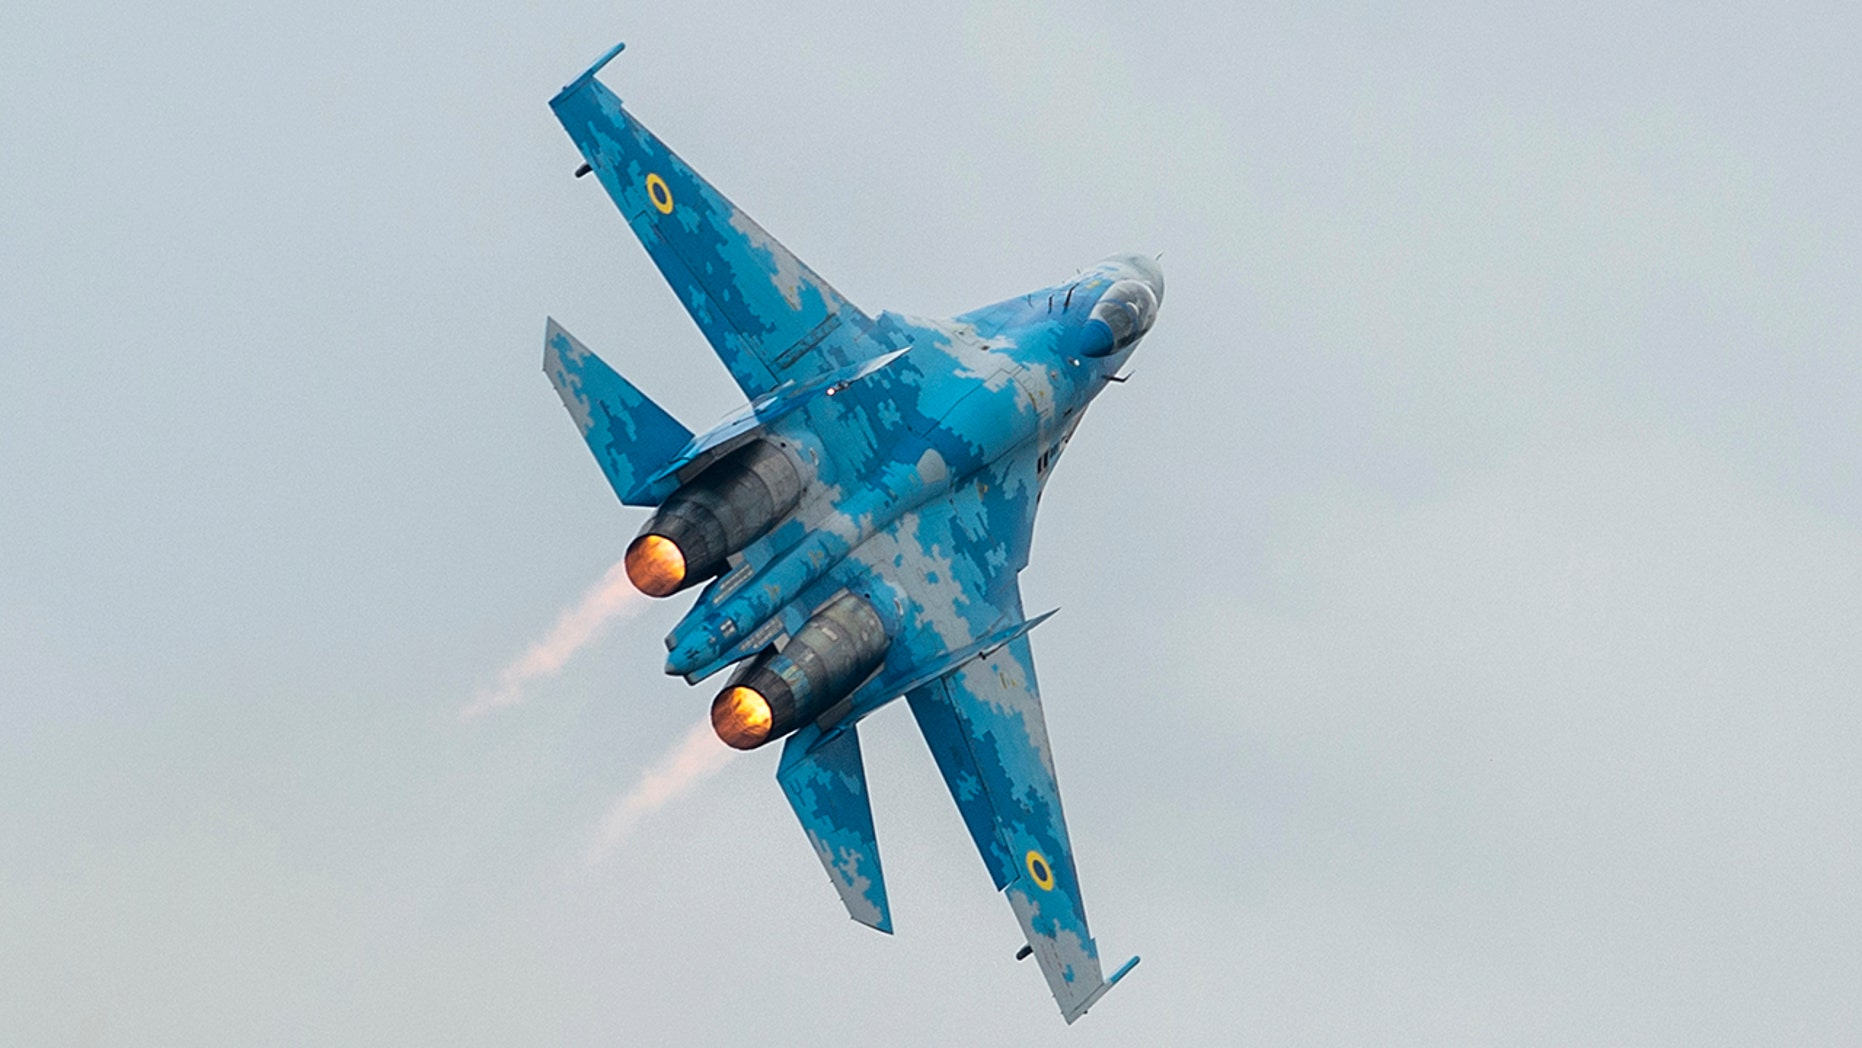 Ukrainian Air Force Confirms Death of US Serviceman in Su-27 Crash